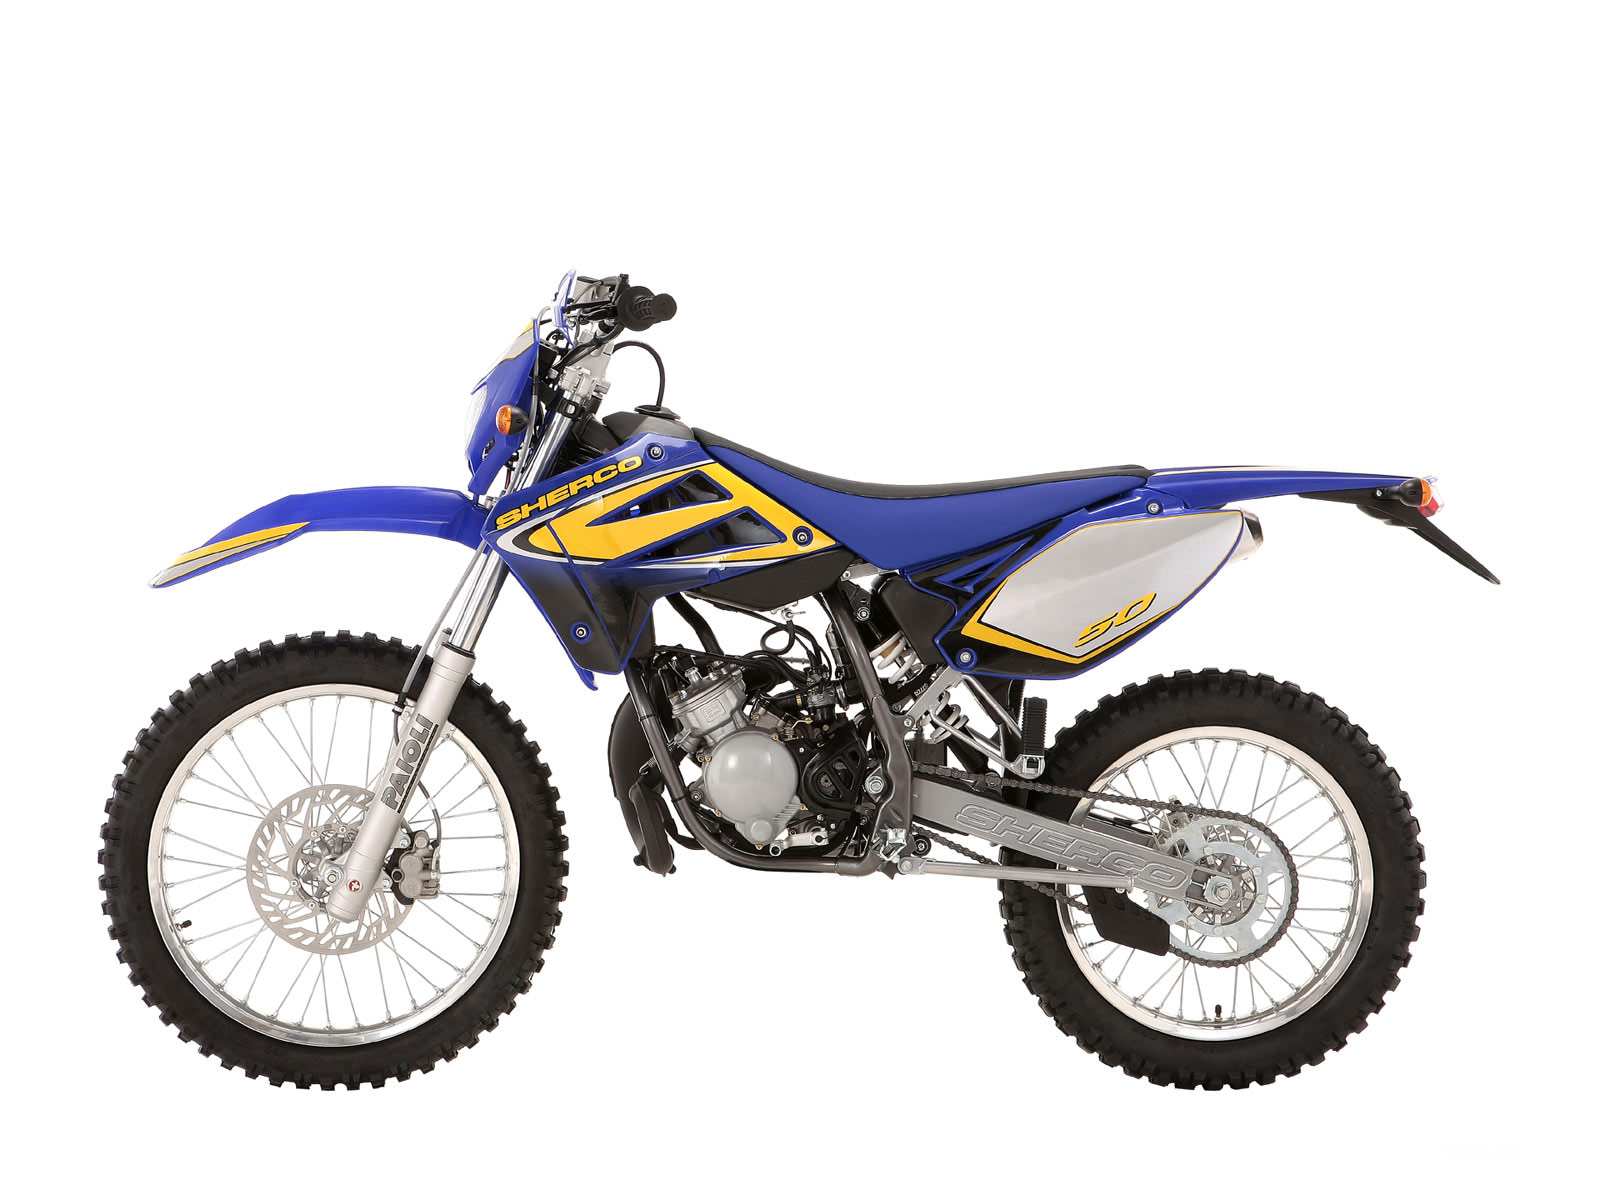 Sherco Shark 50 CC Enduro 2005 #1